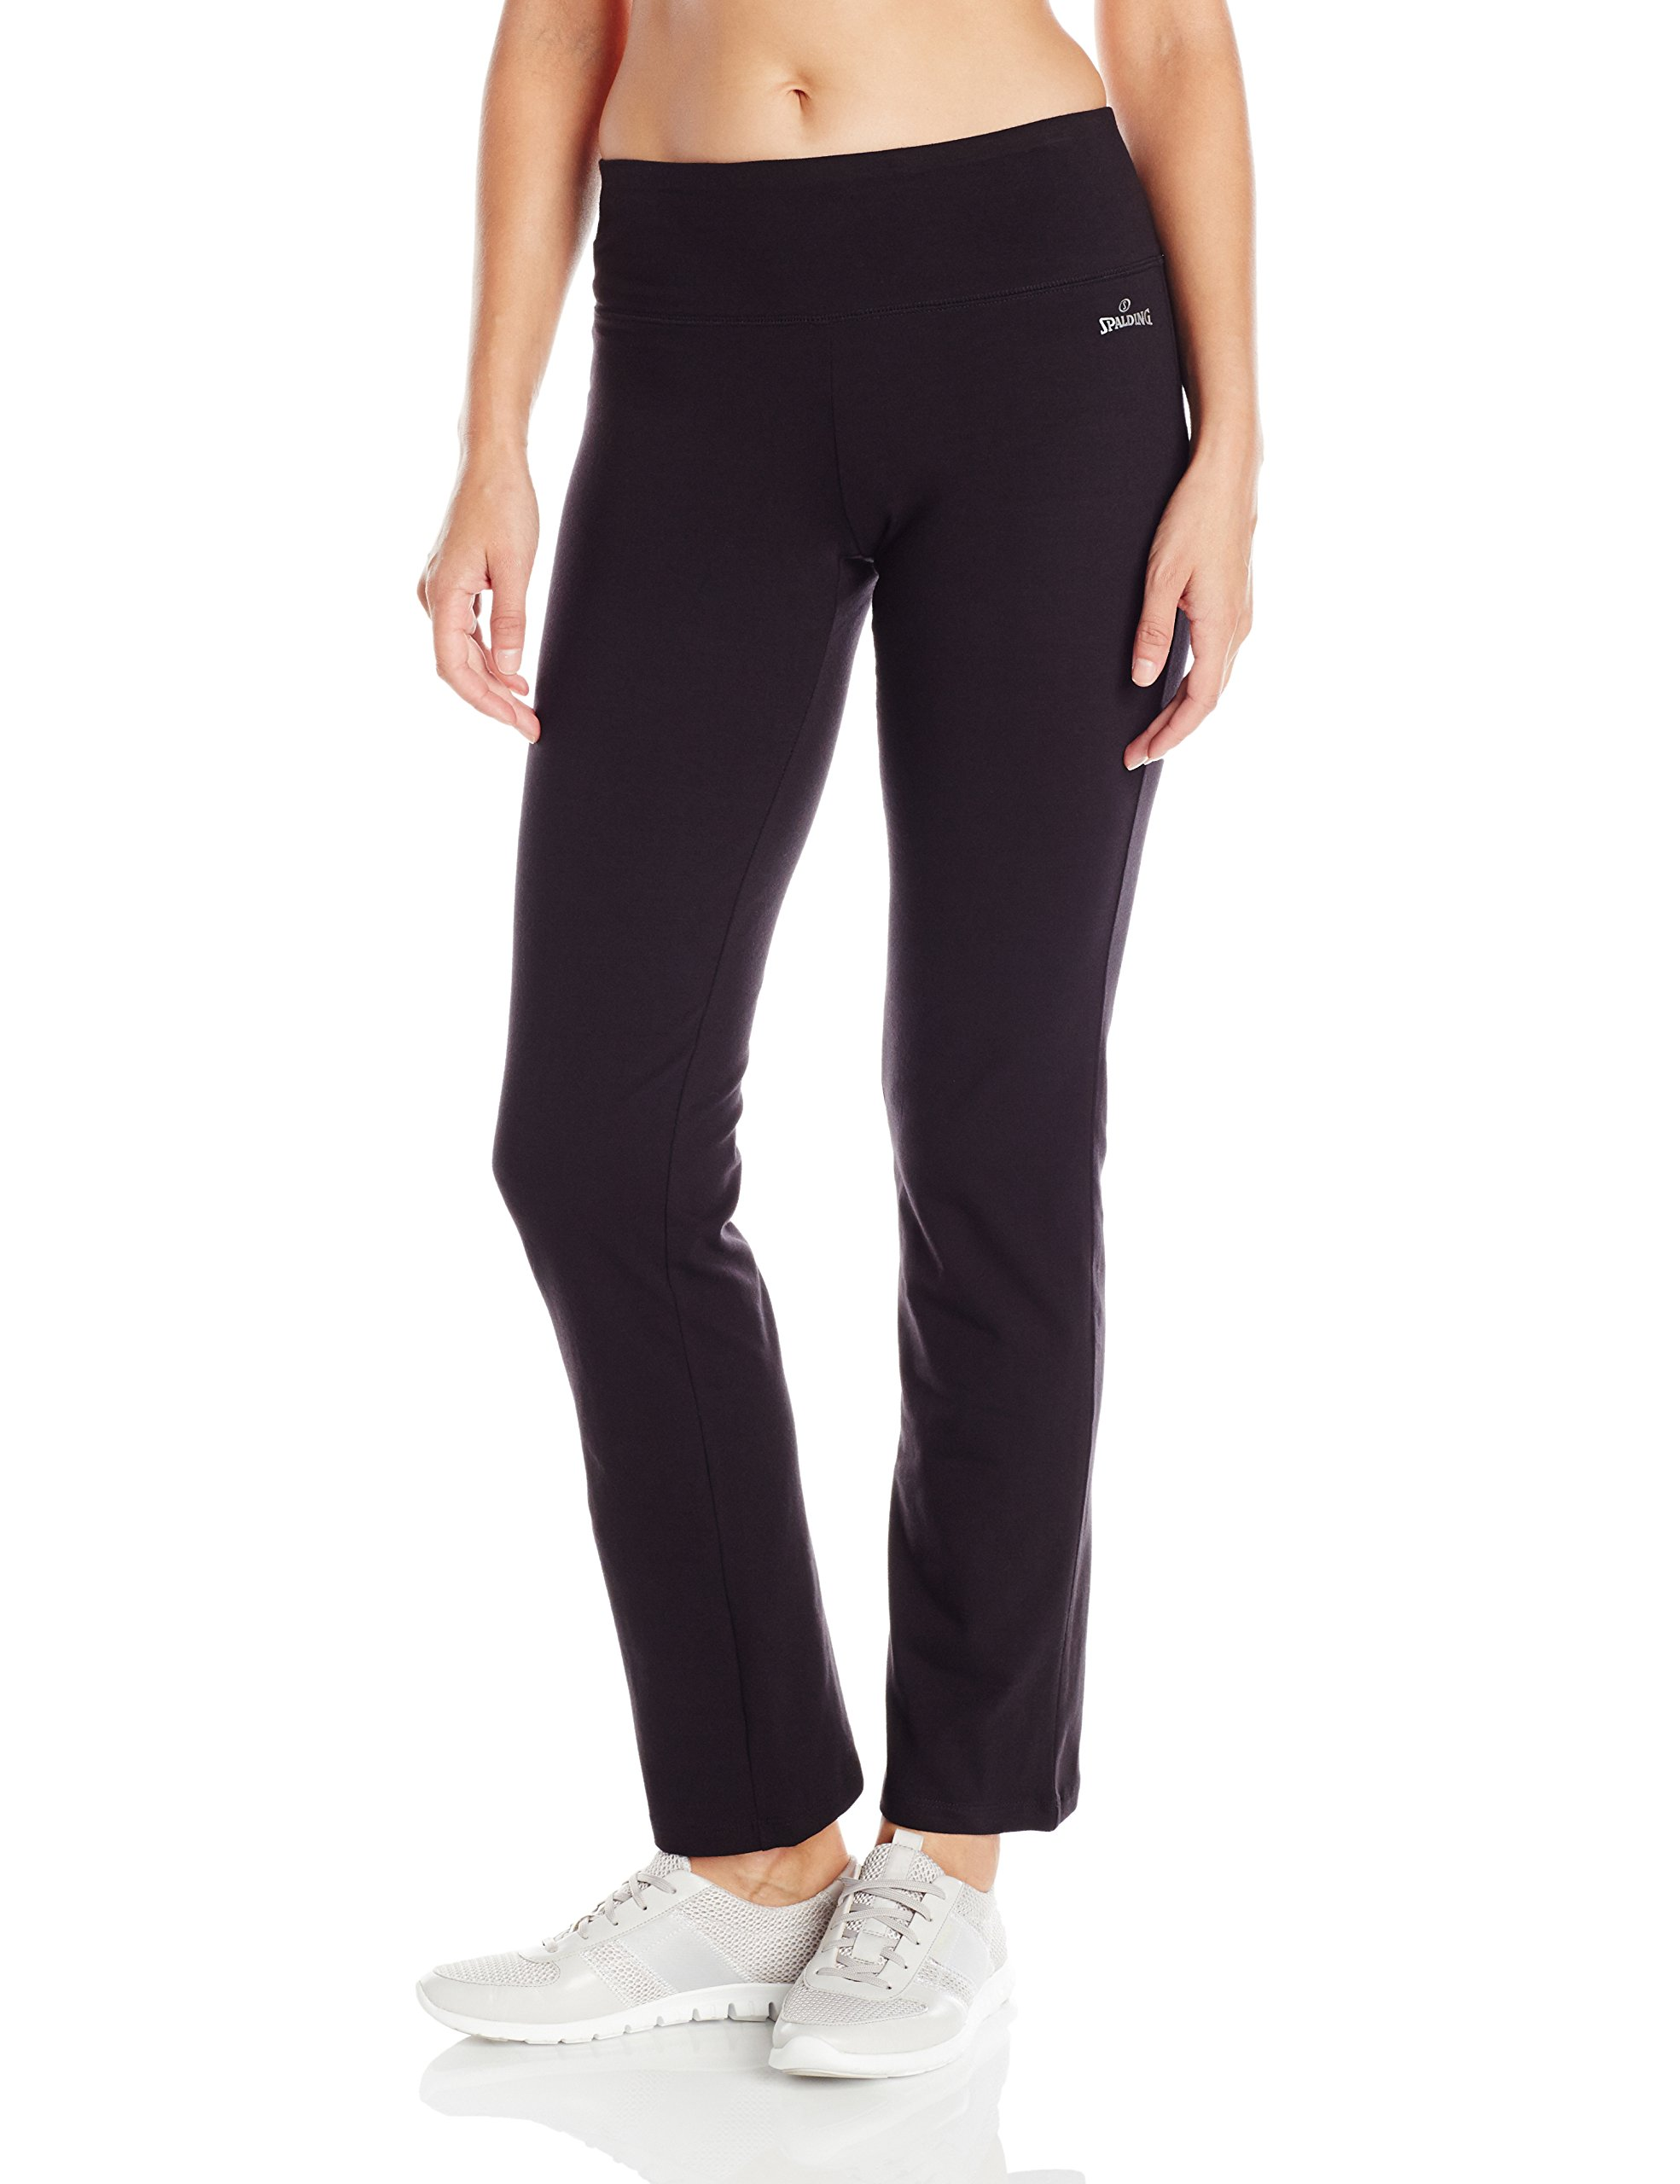 Spalding Women's Bootleg Pant, Deep Black, Large